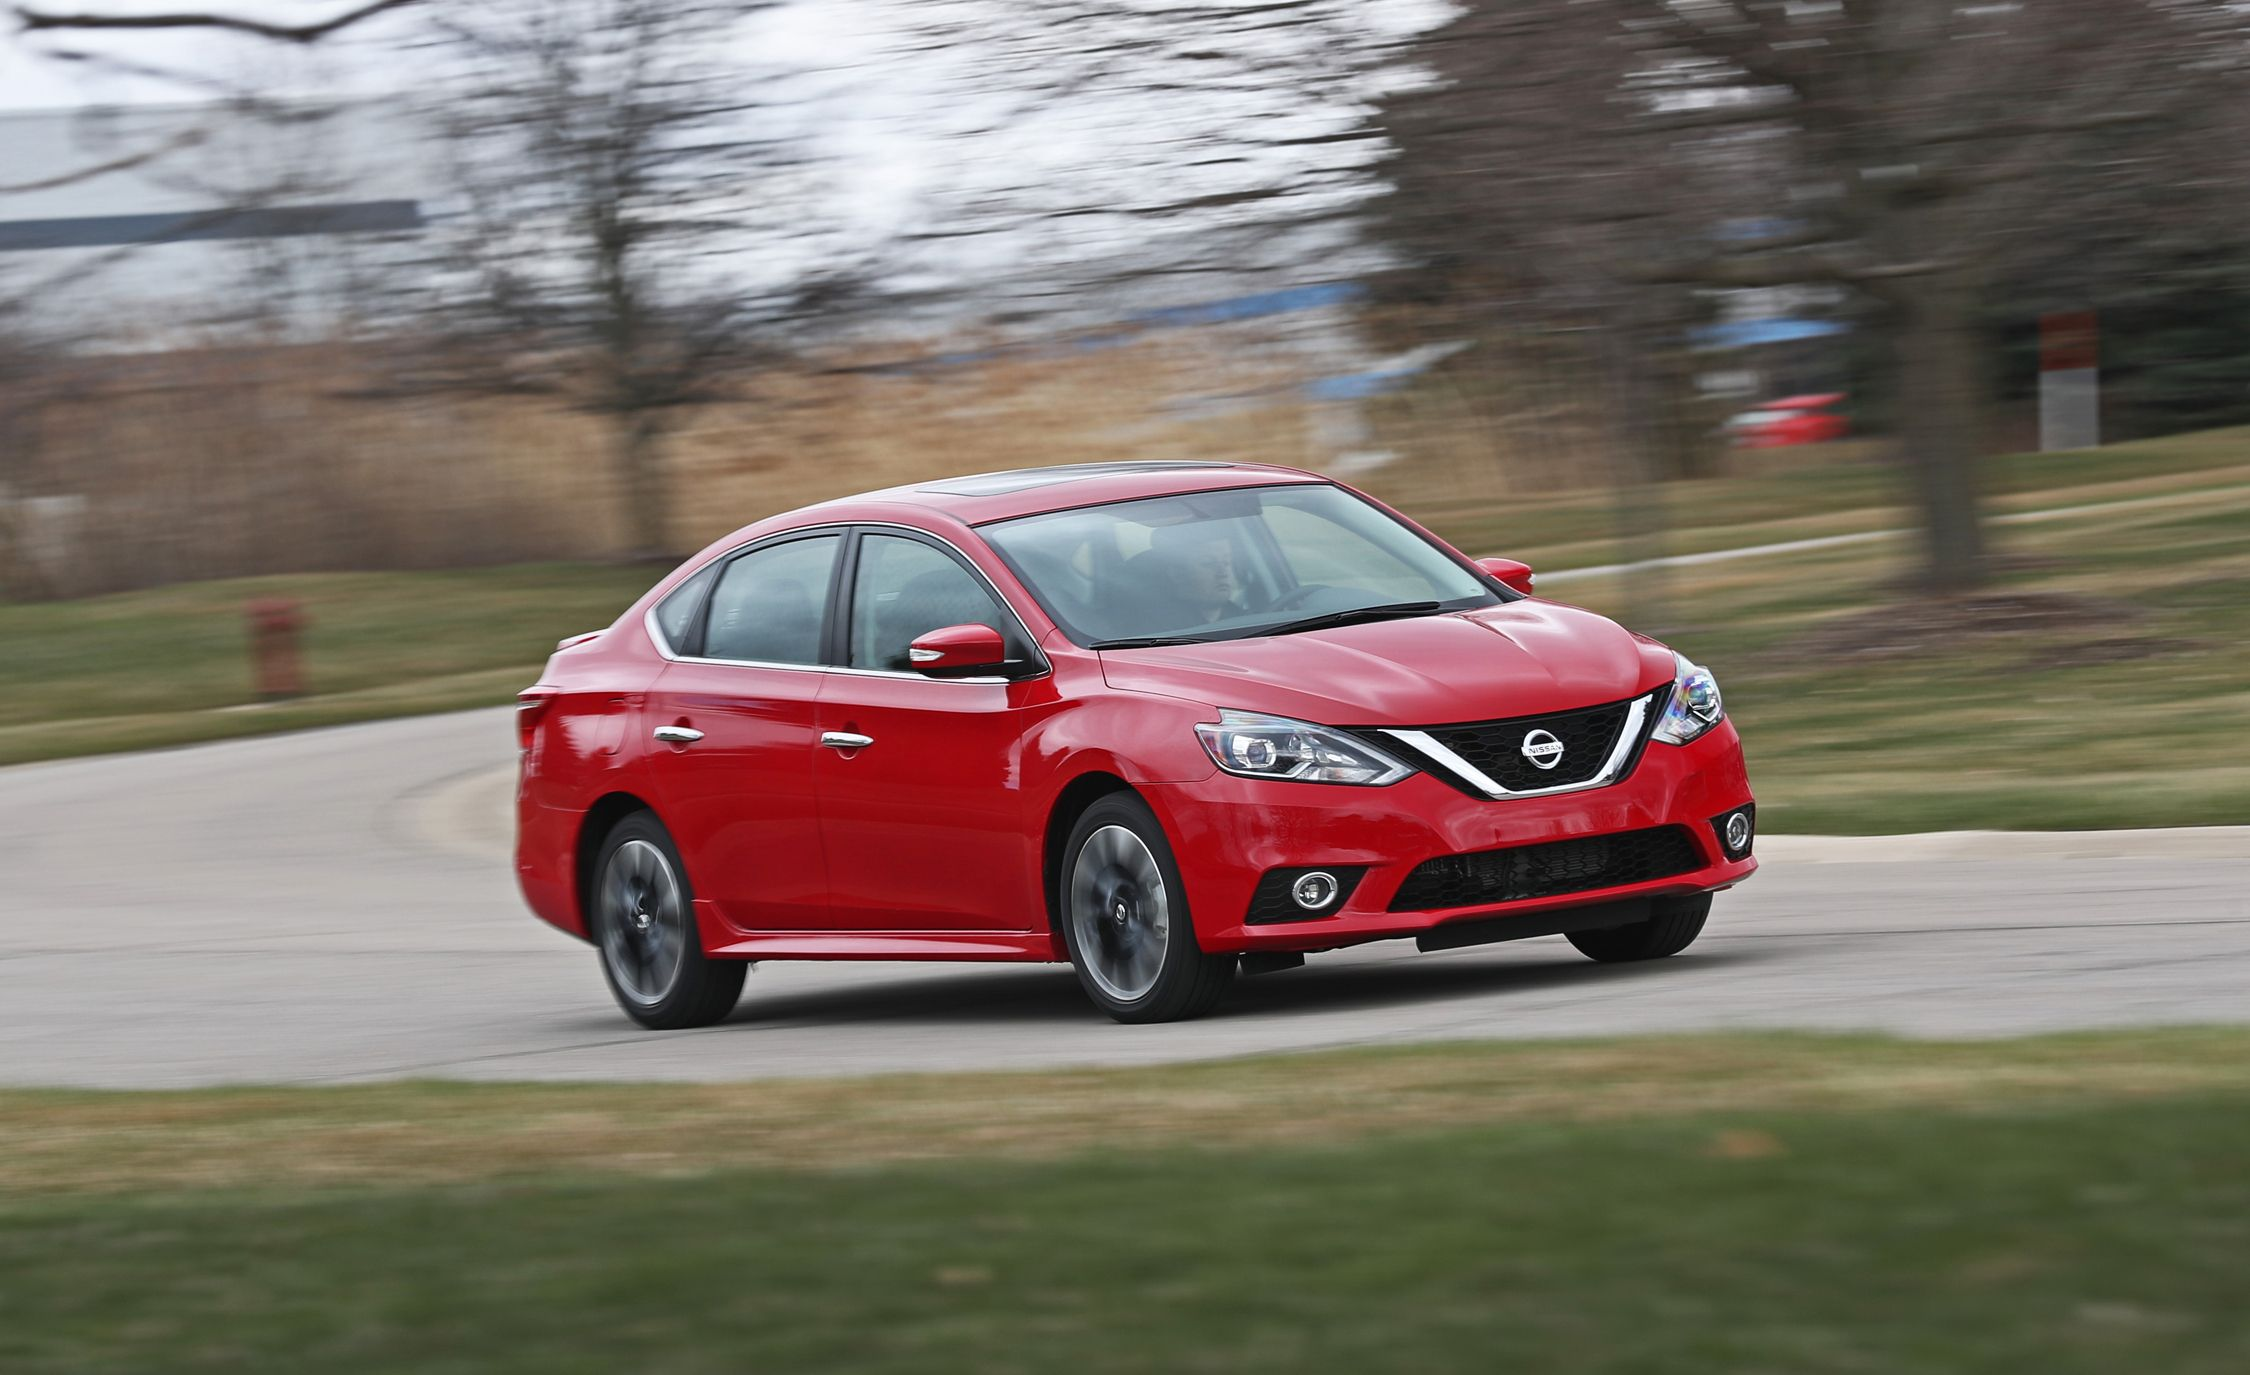 2019 Nissan Sentra Reviews | Nissan Sentra Price, Photos, and Specs | Car  and Driver